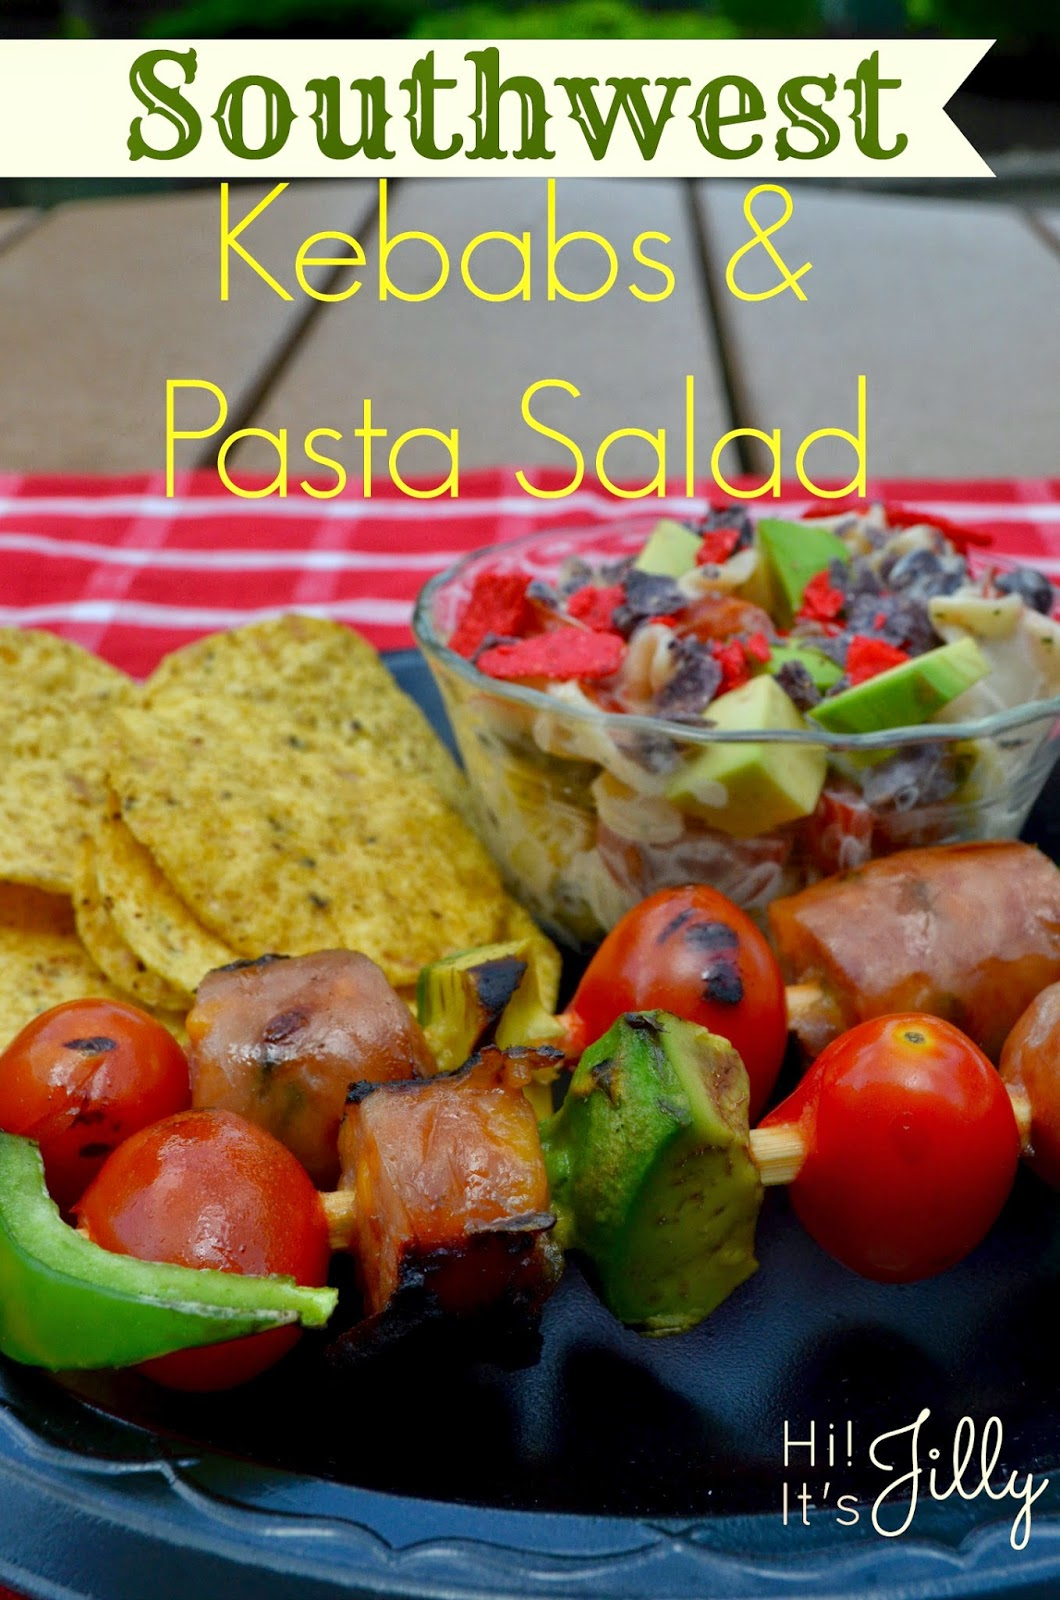 Easy Southwest Kebabs and Southwest Pasta Salad! Quick and Yummy for a summer BBQ or busy evening! #PriceChopperBBQ #Shop #recipe #southwest